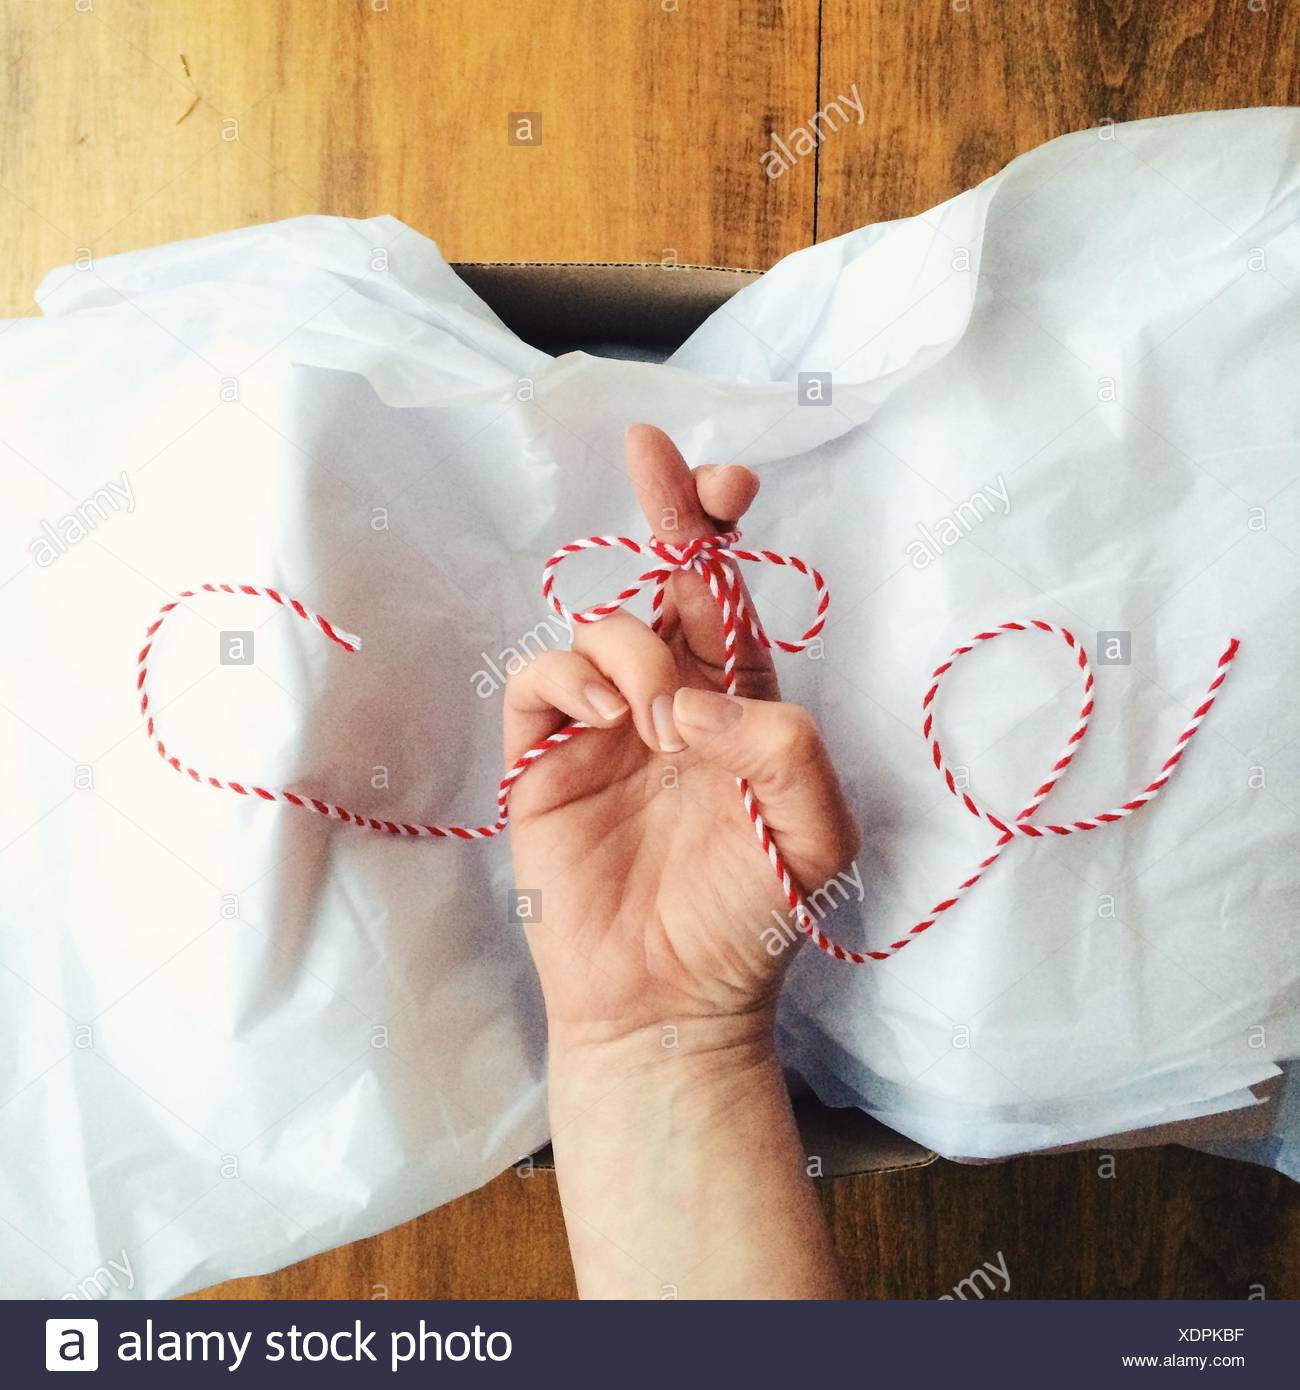 Fingers crossed and tied in a wrapped bow in a box - Stock Image